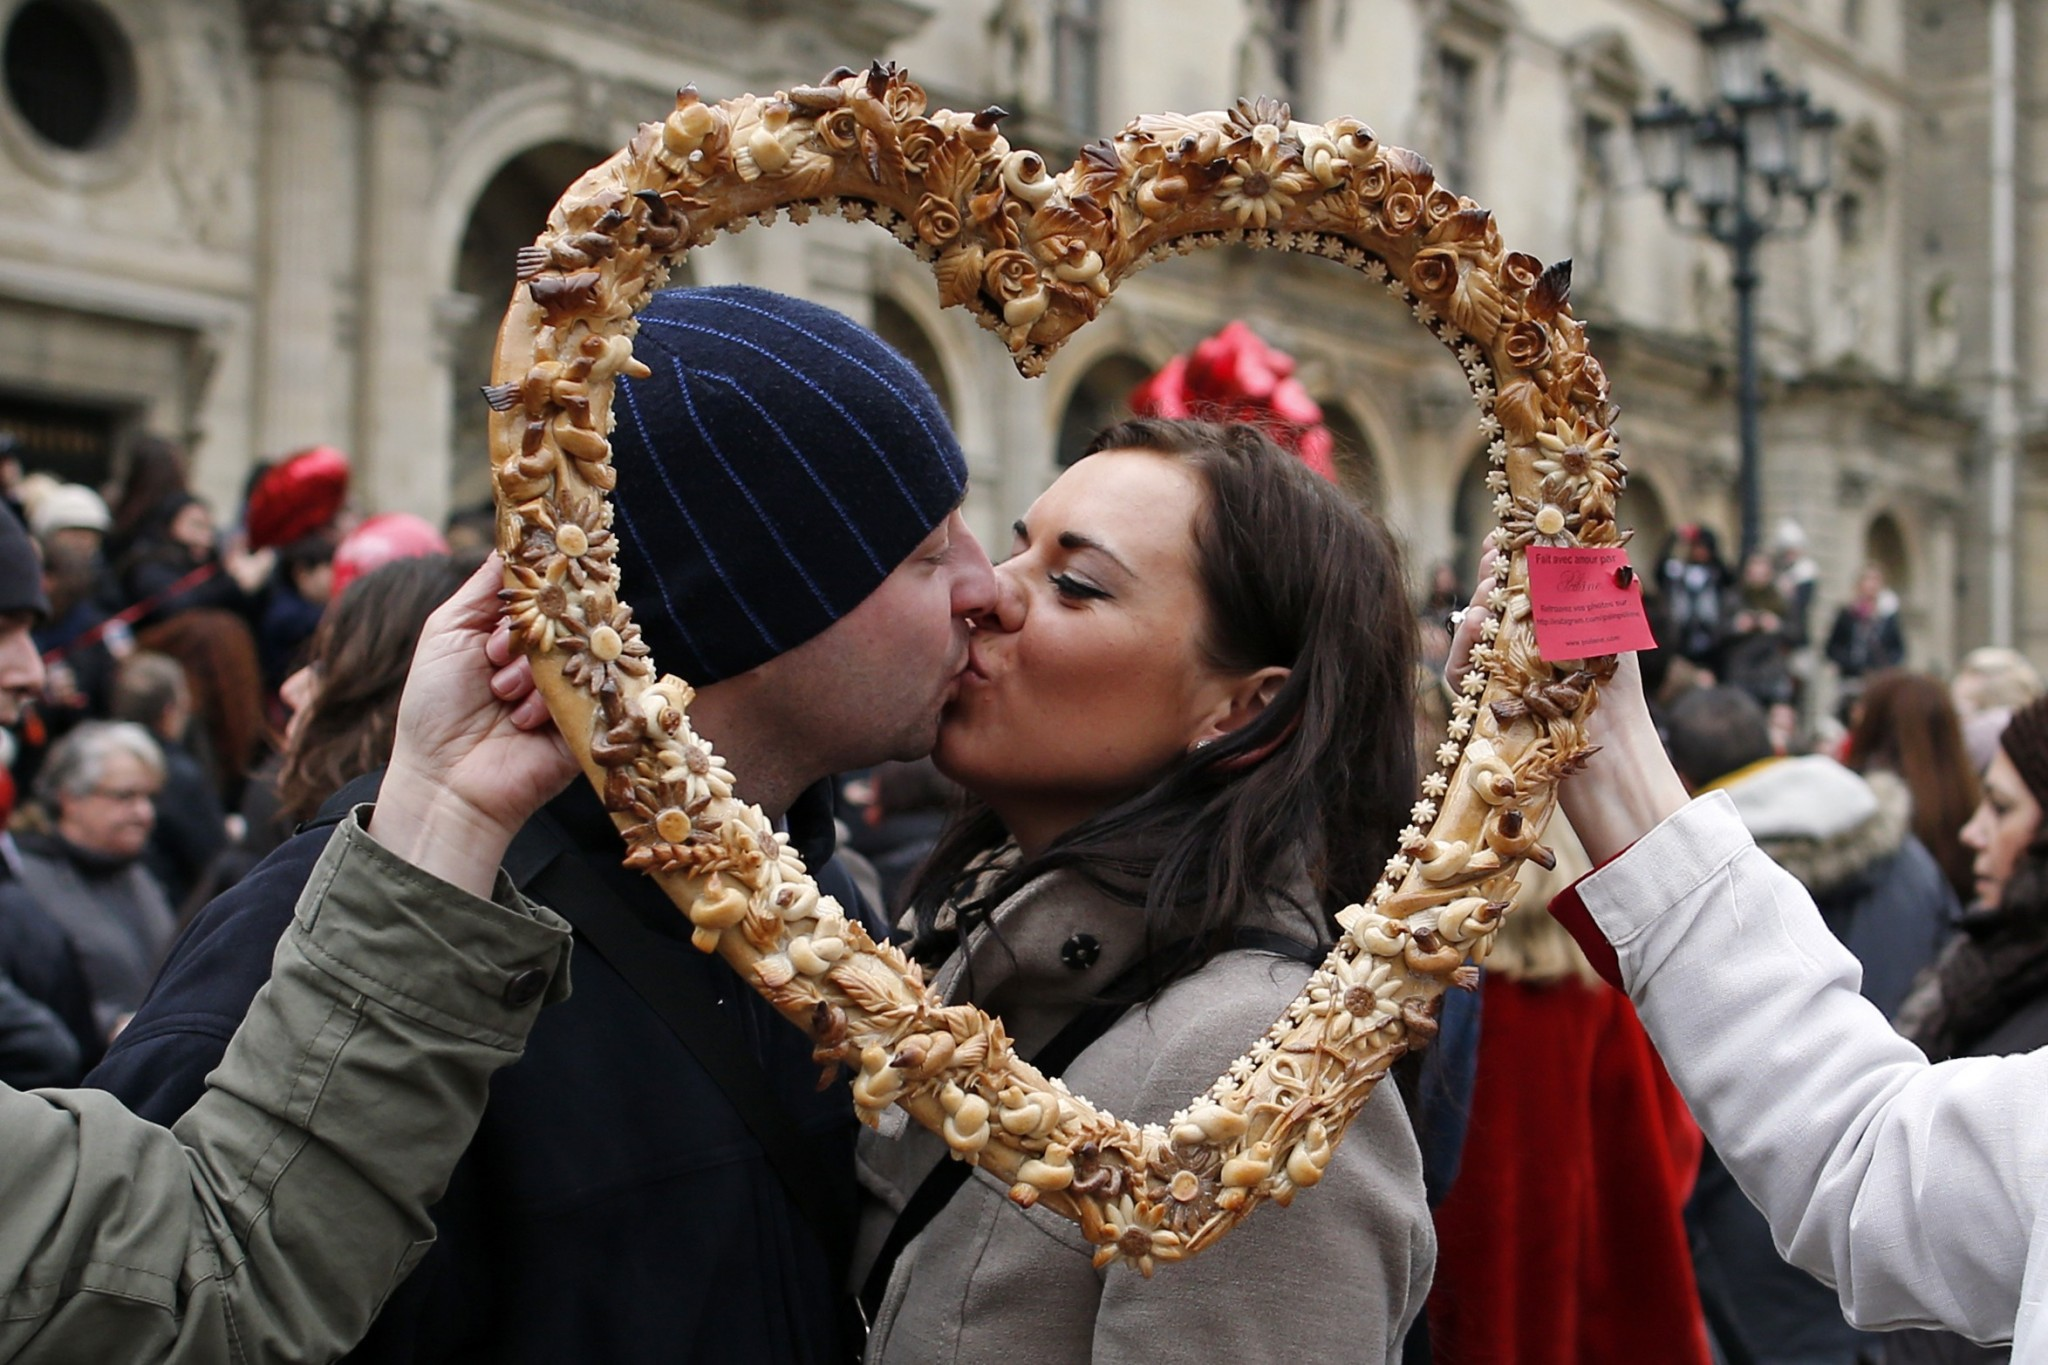 wearing valentines day traditions - HD1170×780